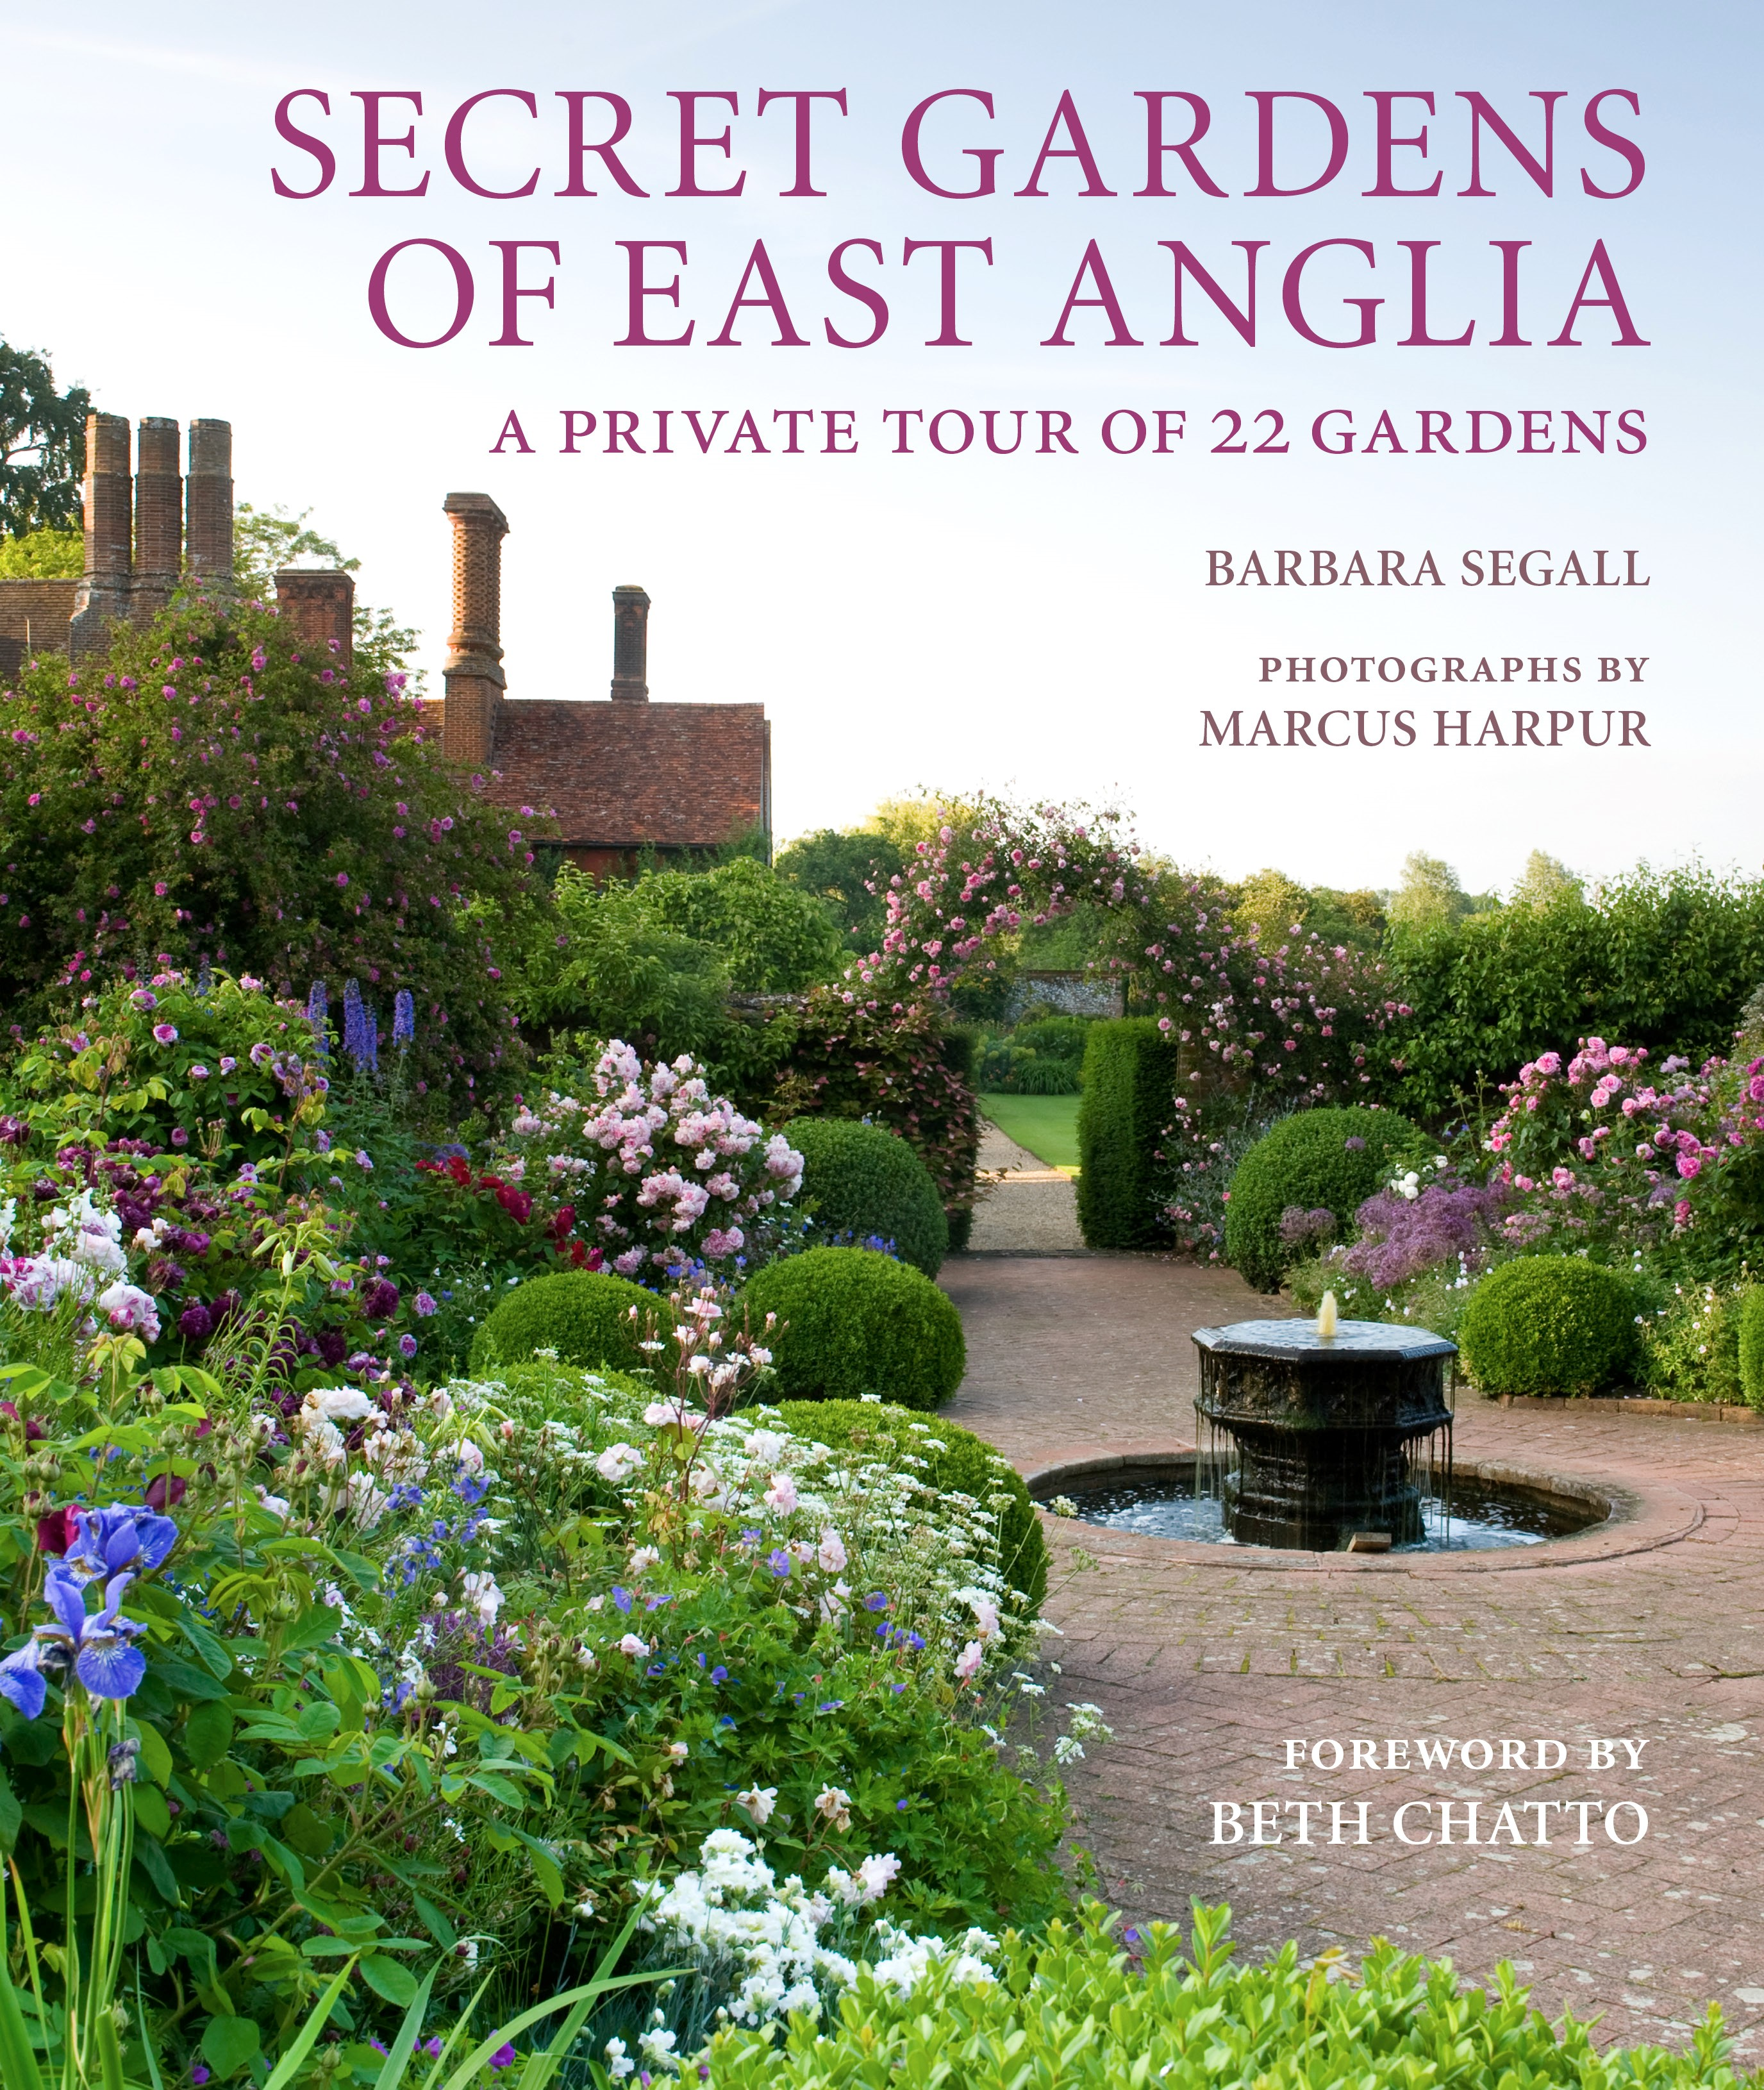 Secret Gardens of East Anglia cover.jpg